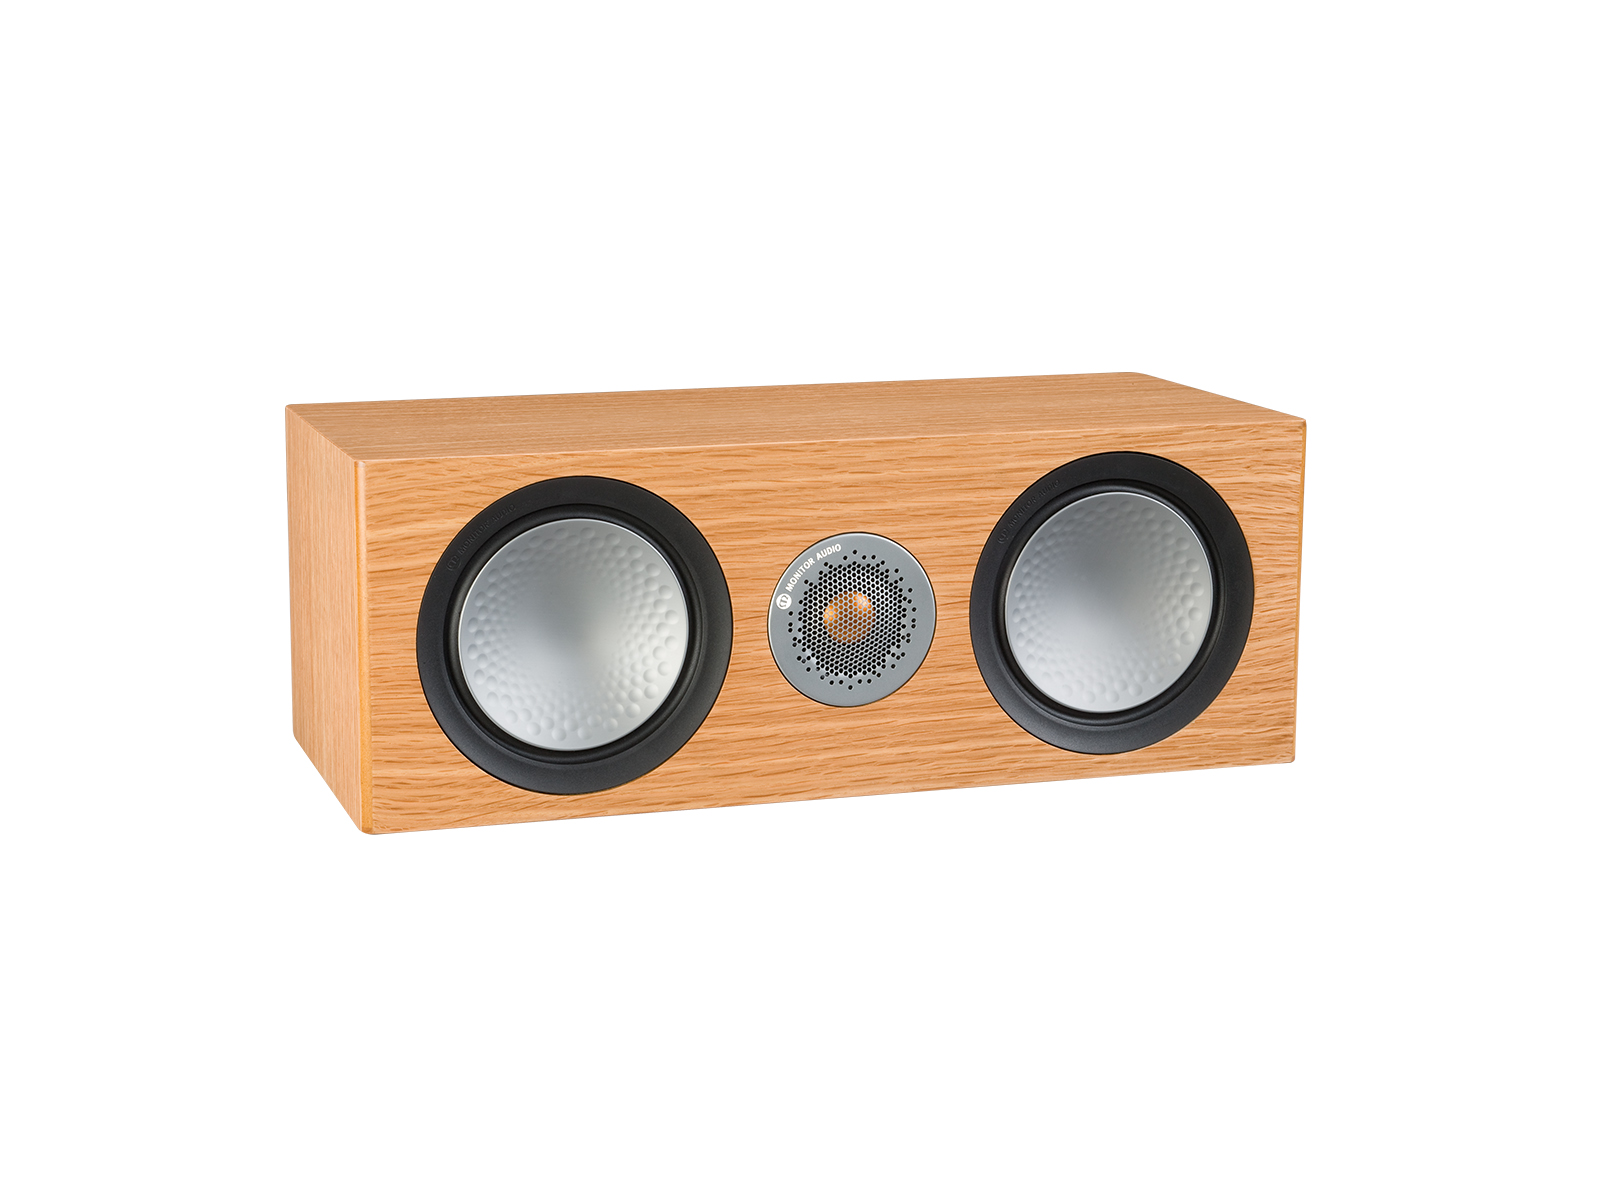 Silver C150, grille-less centre channel speakers, with a natural oak finish.